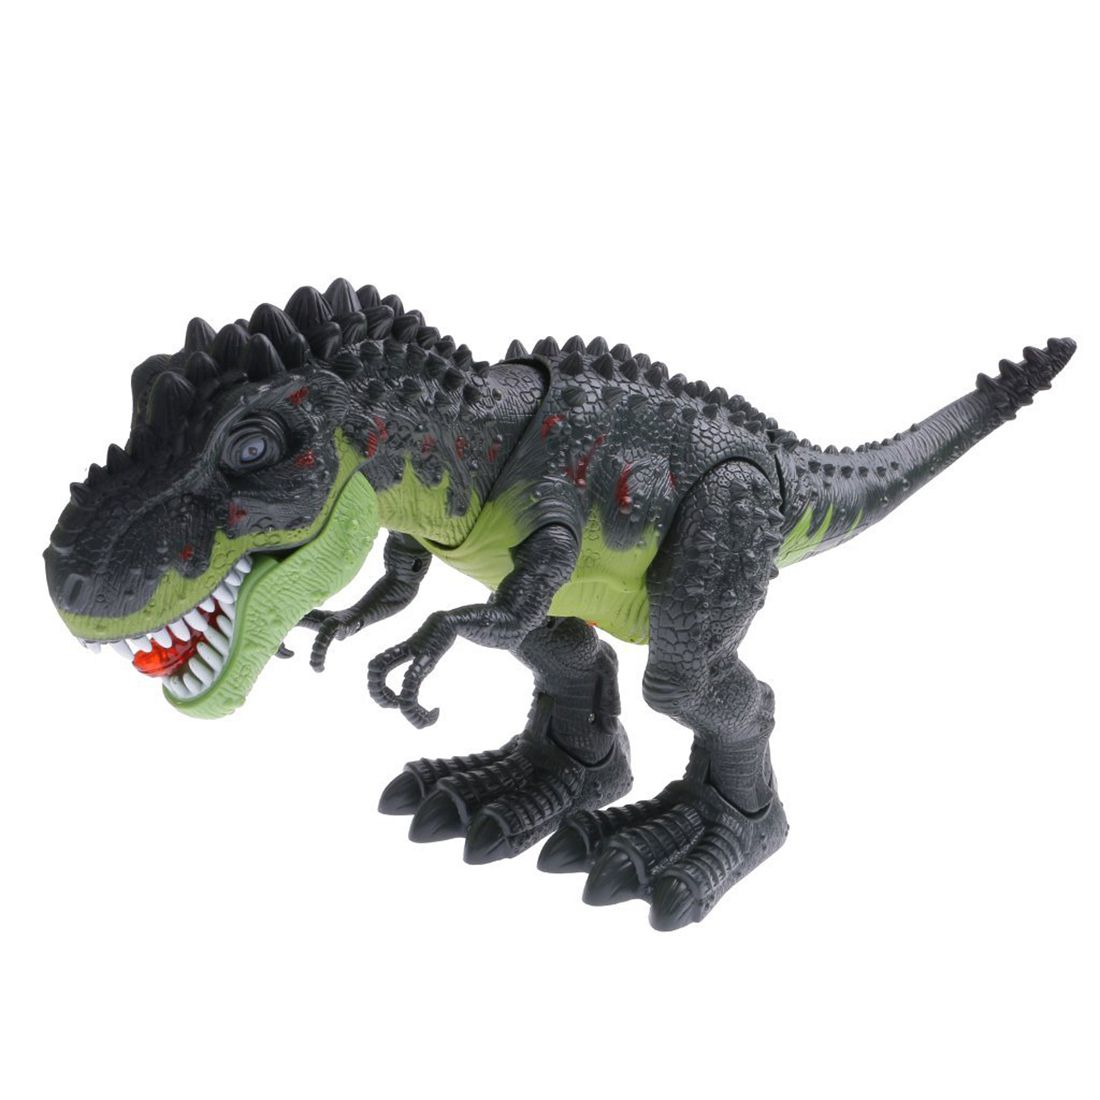 47cm Large Electric Walking Dinosaur Toy Robot W/ Sound Light Moving Kids Toy Boy Birthday Gift